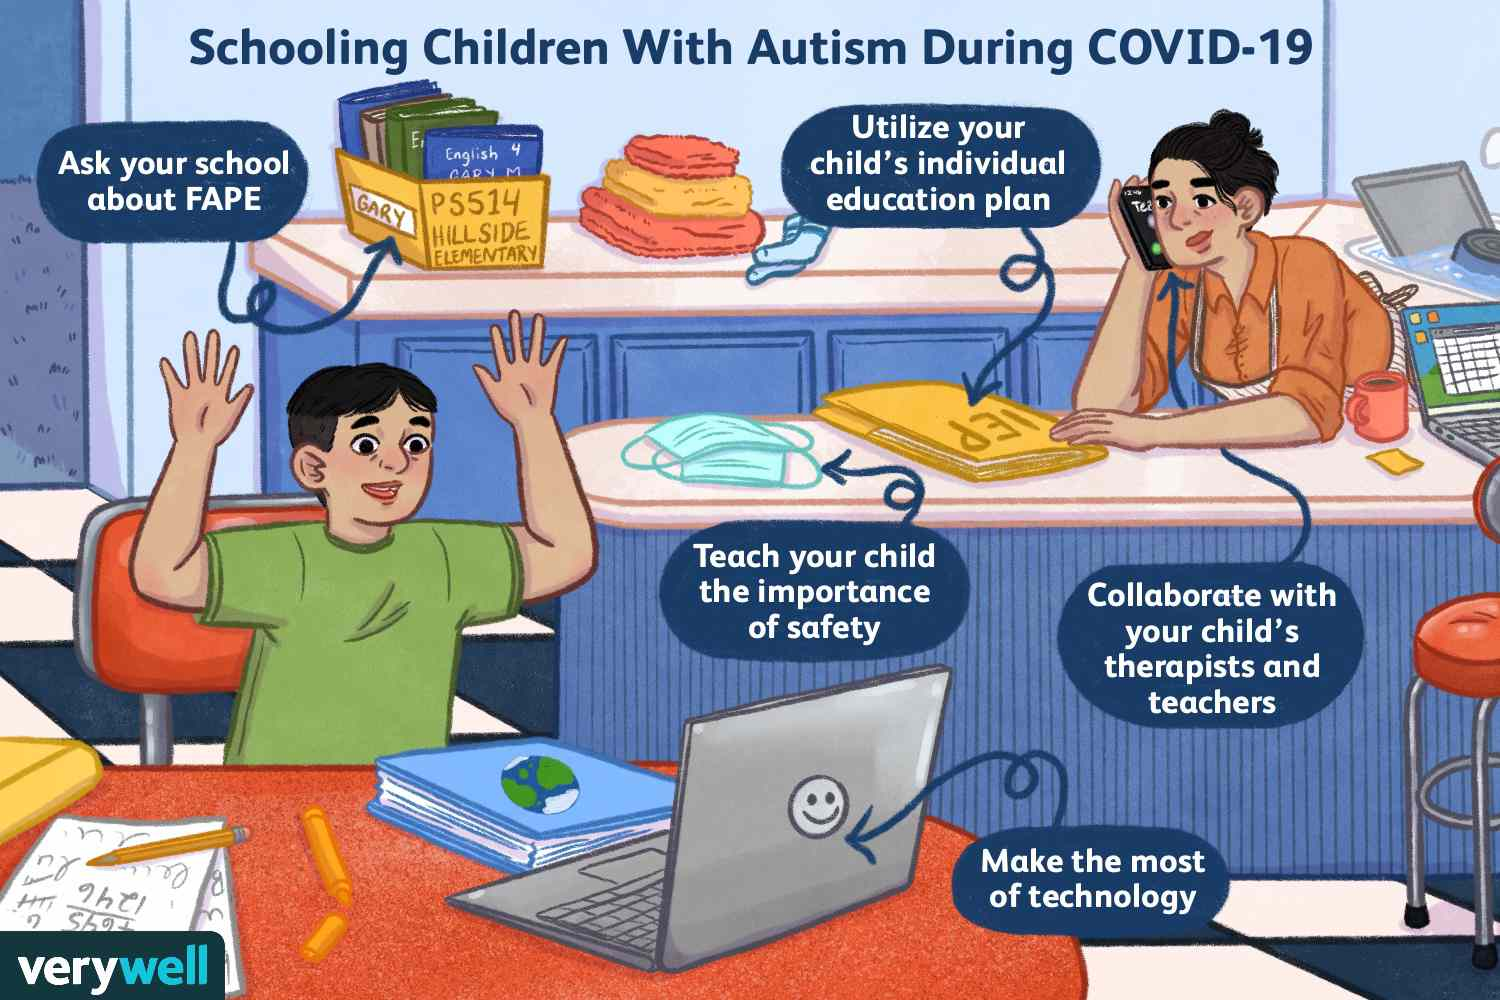 Schooling Children With Autism During Covid-19